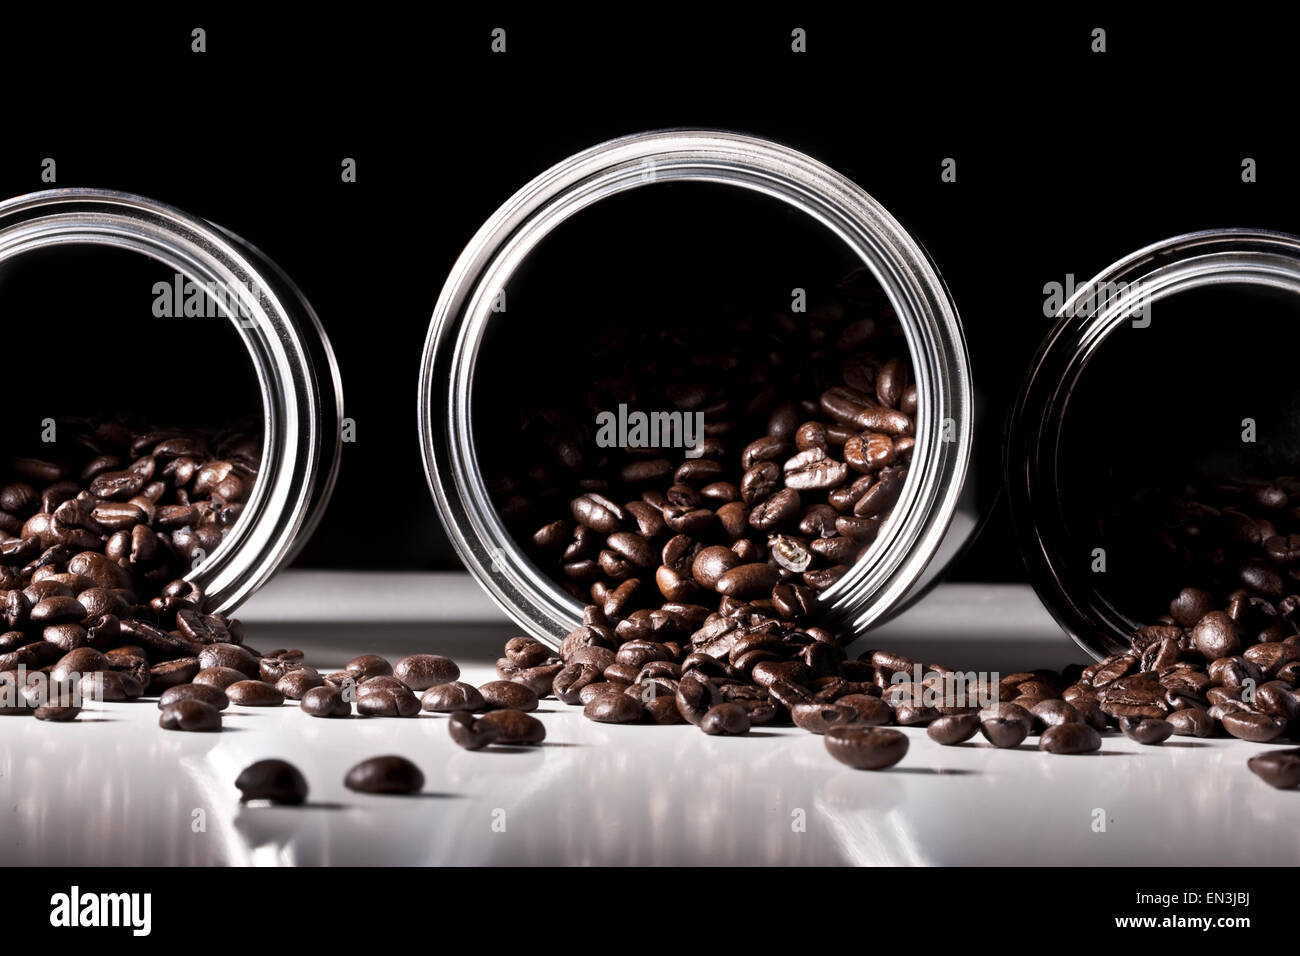 Studio shot of coffee beans spilling from tins - Stock Image